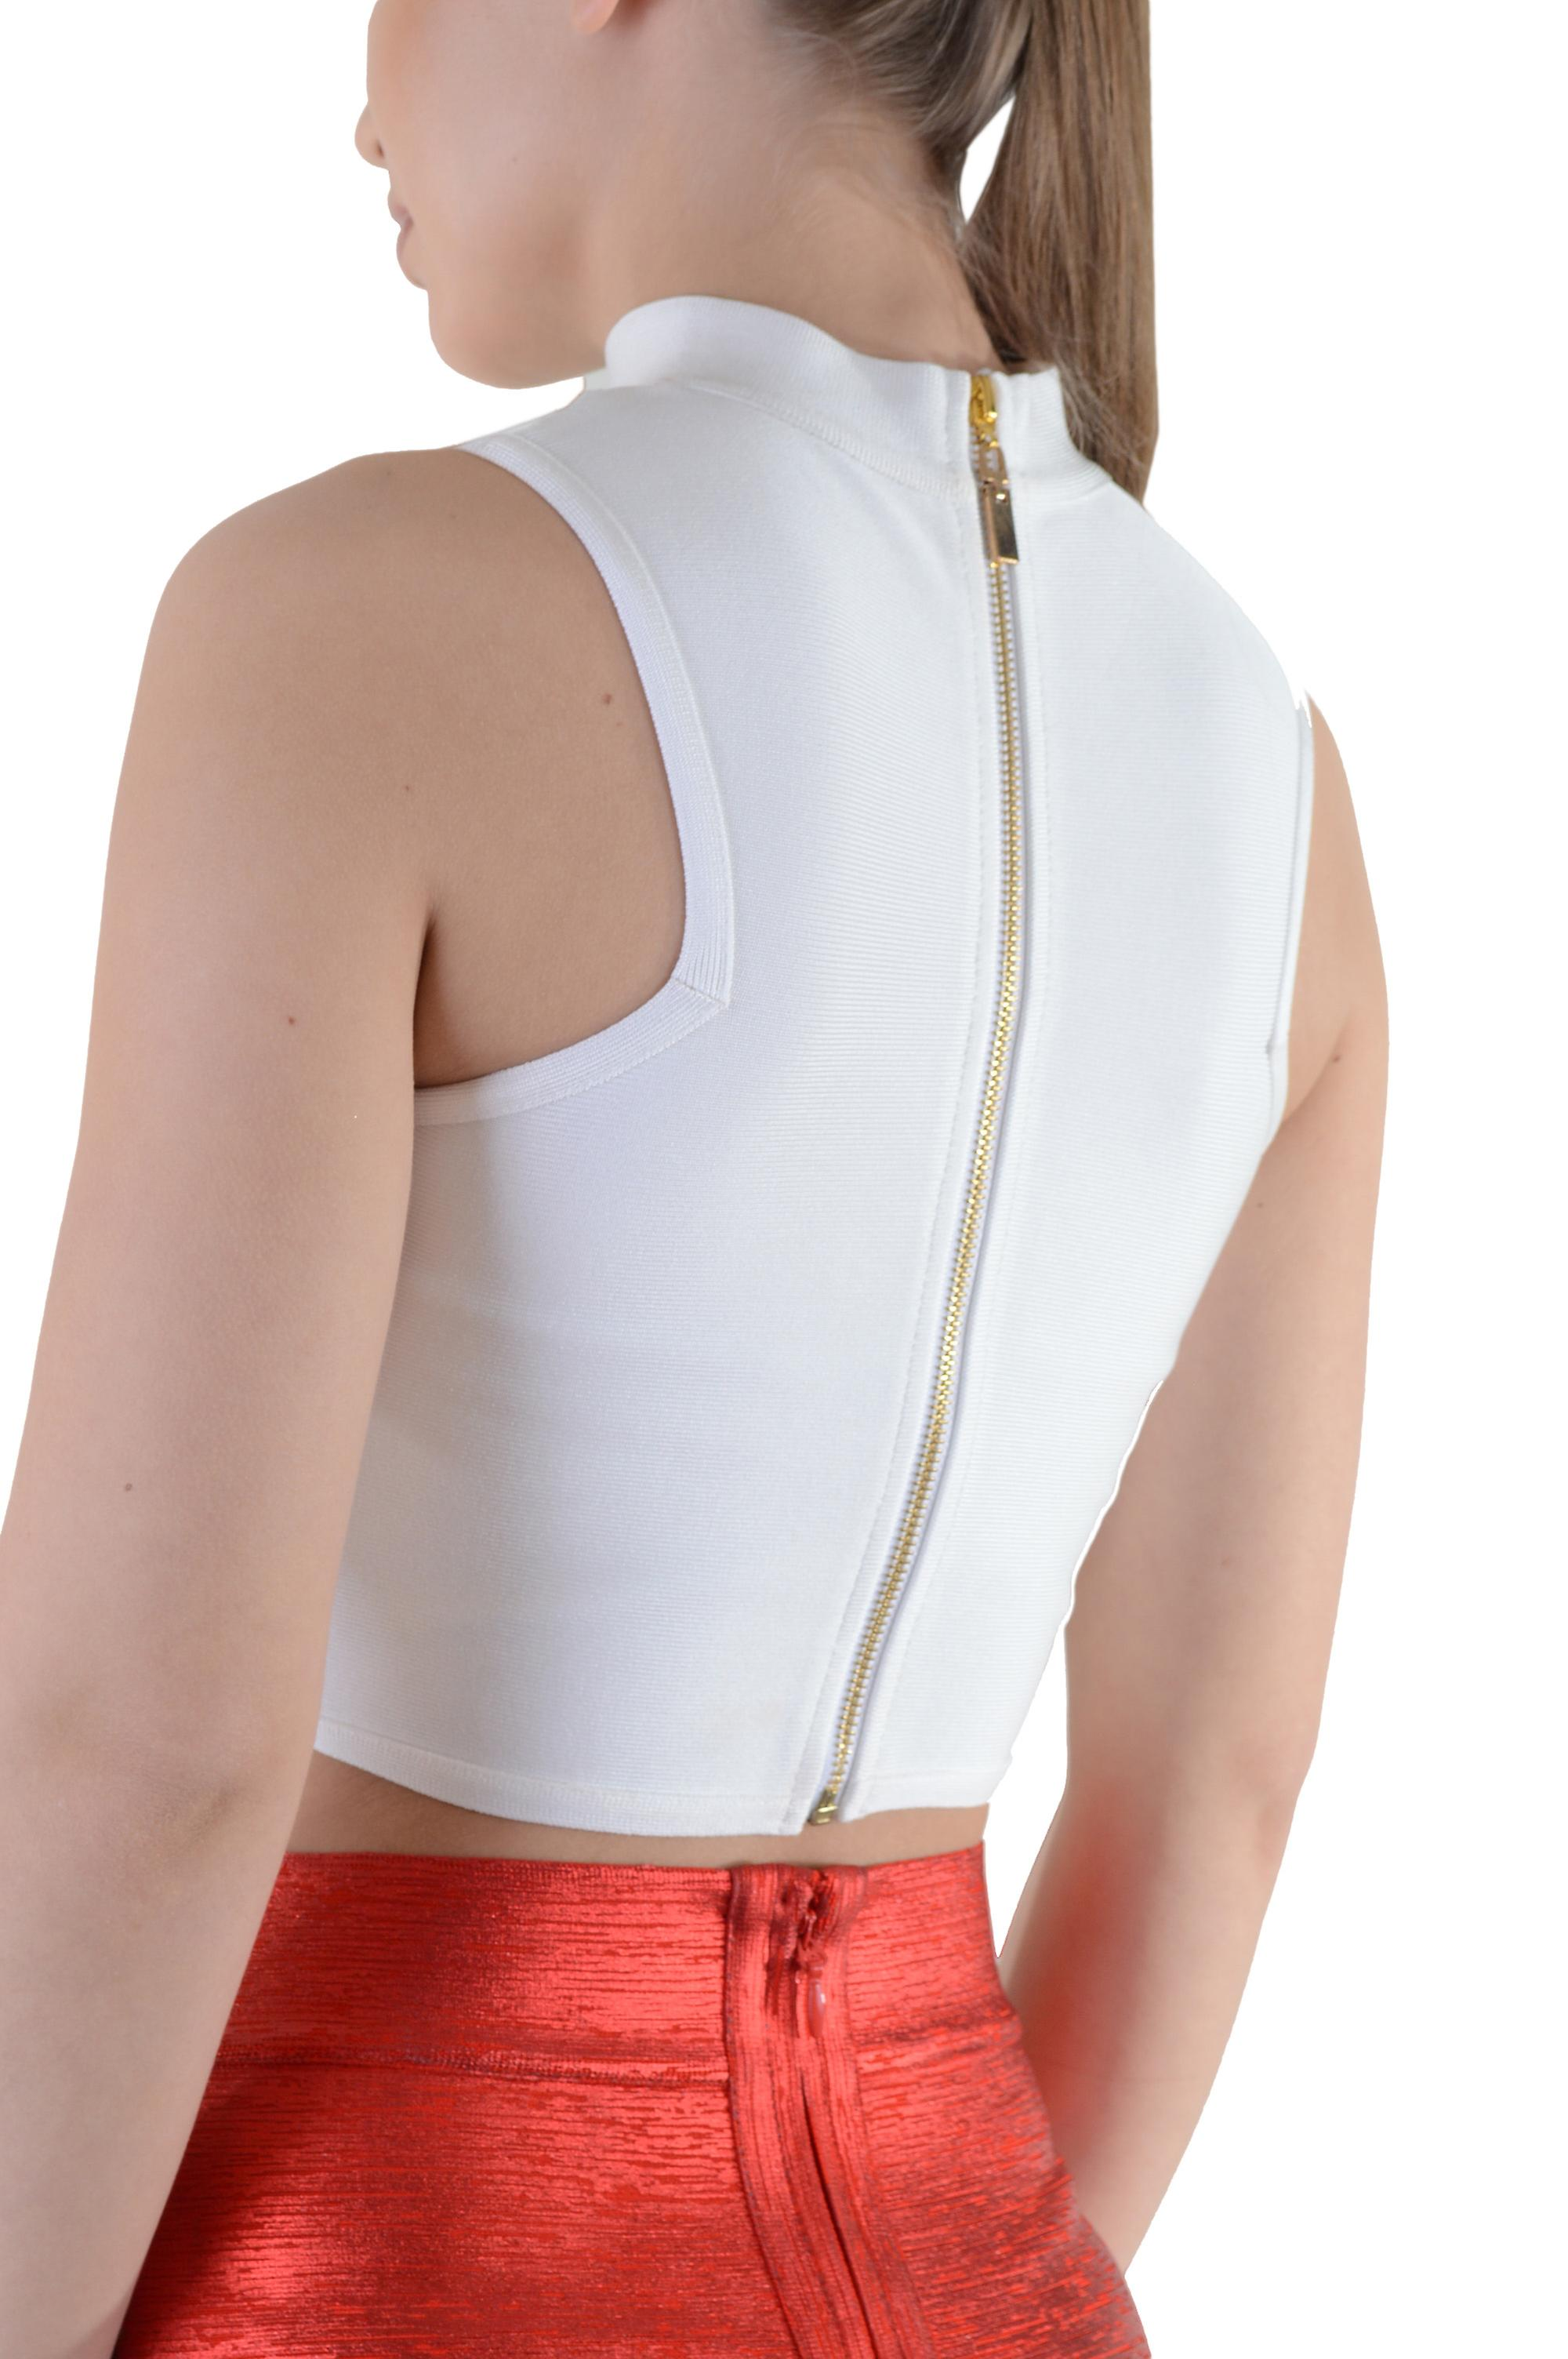 Lovemystyle White Bandage Material Crop Top With Zip Back